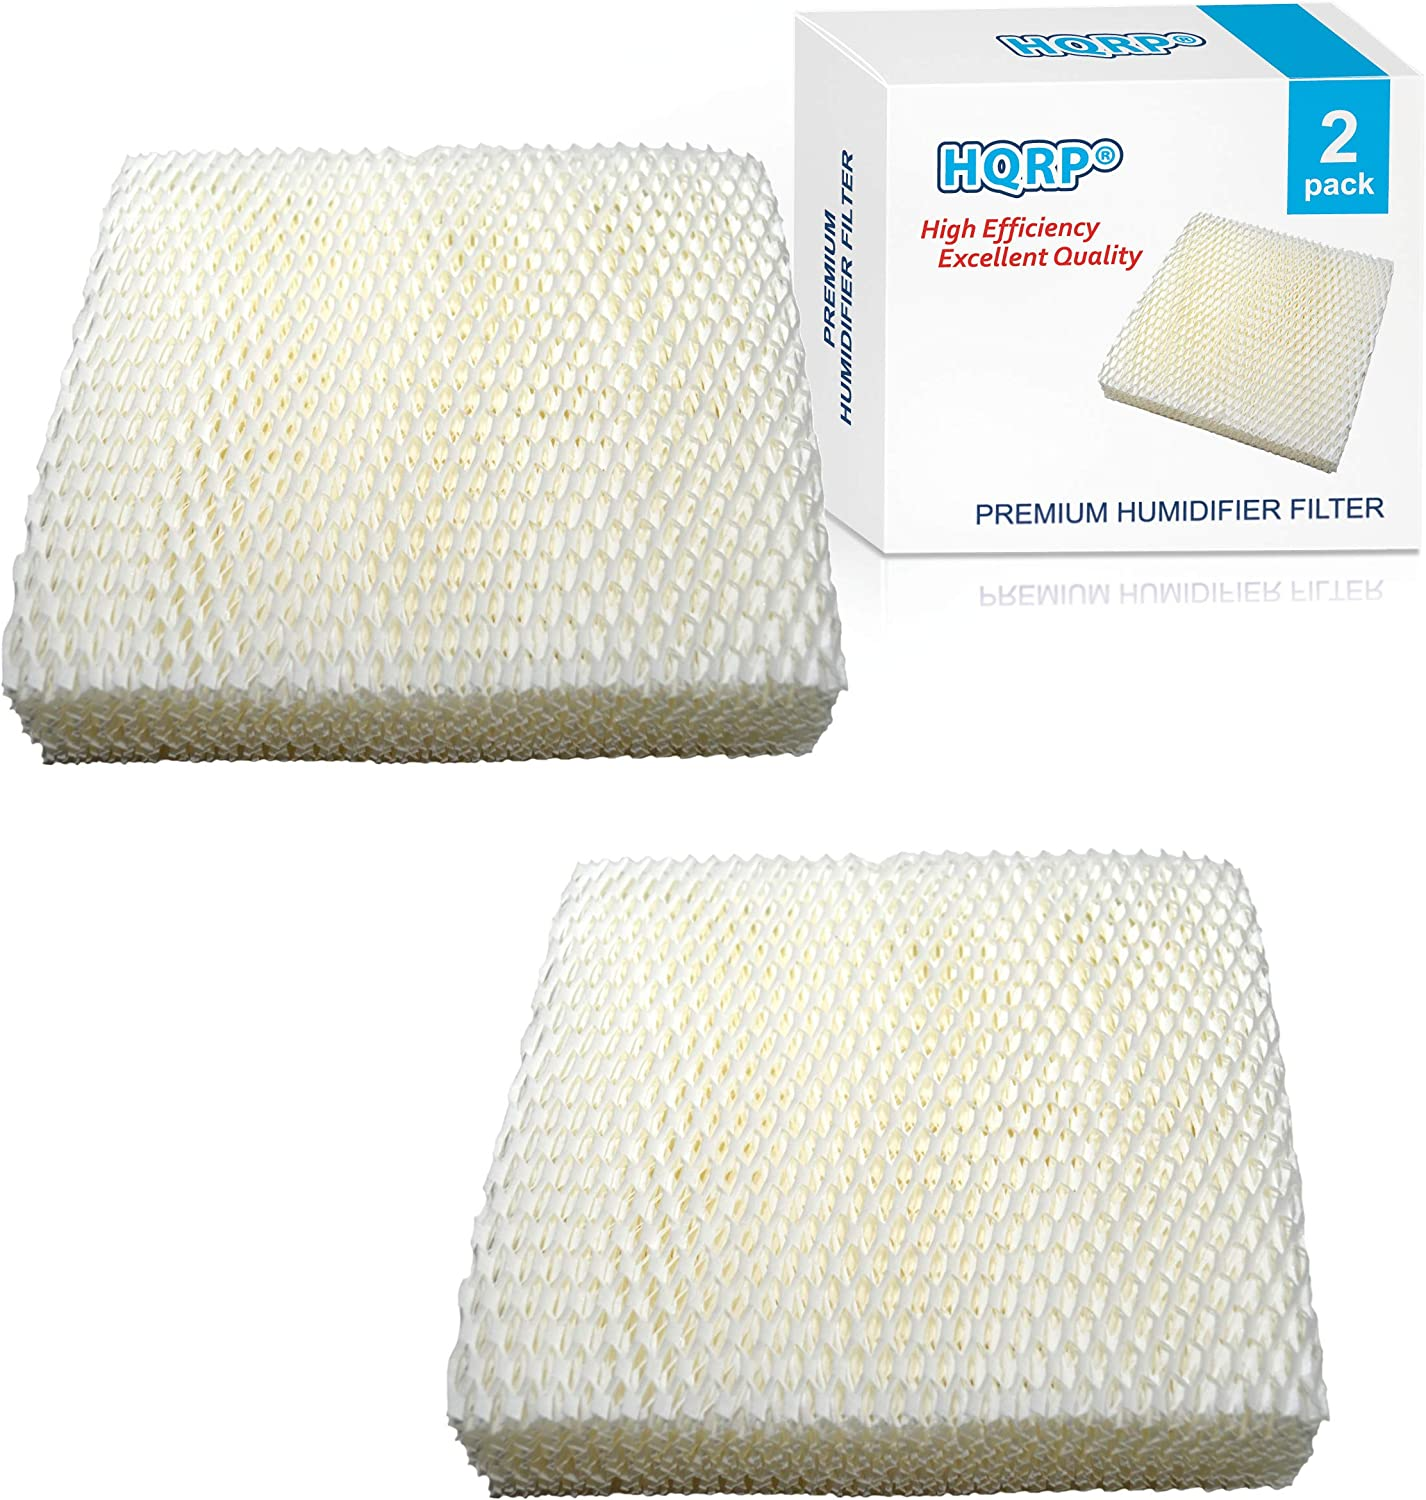 HQRP 2-Pack Wick Filter Compatible with Duracraft DH821 DH822 DH822C DH823 DH824 Humidifiers, AC-811 D11-C HC-811 Replacement